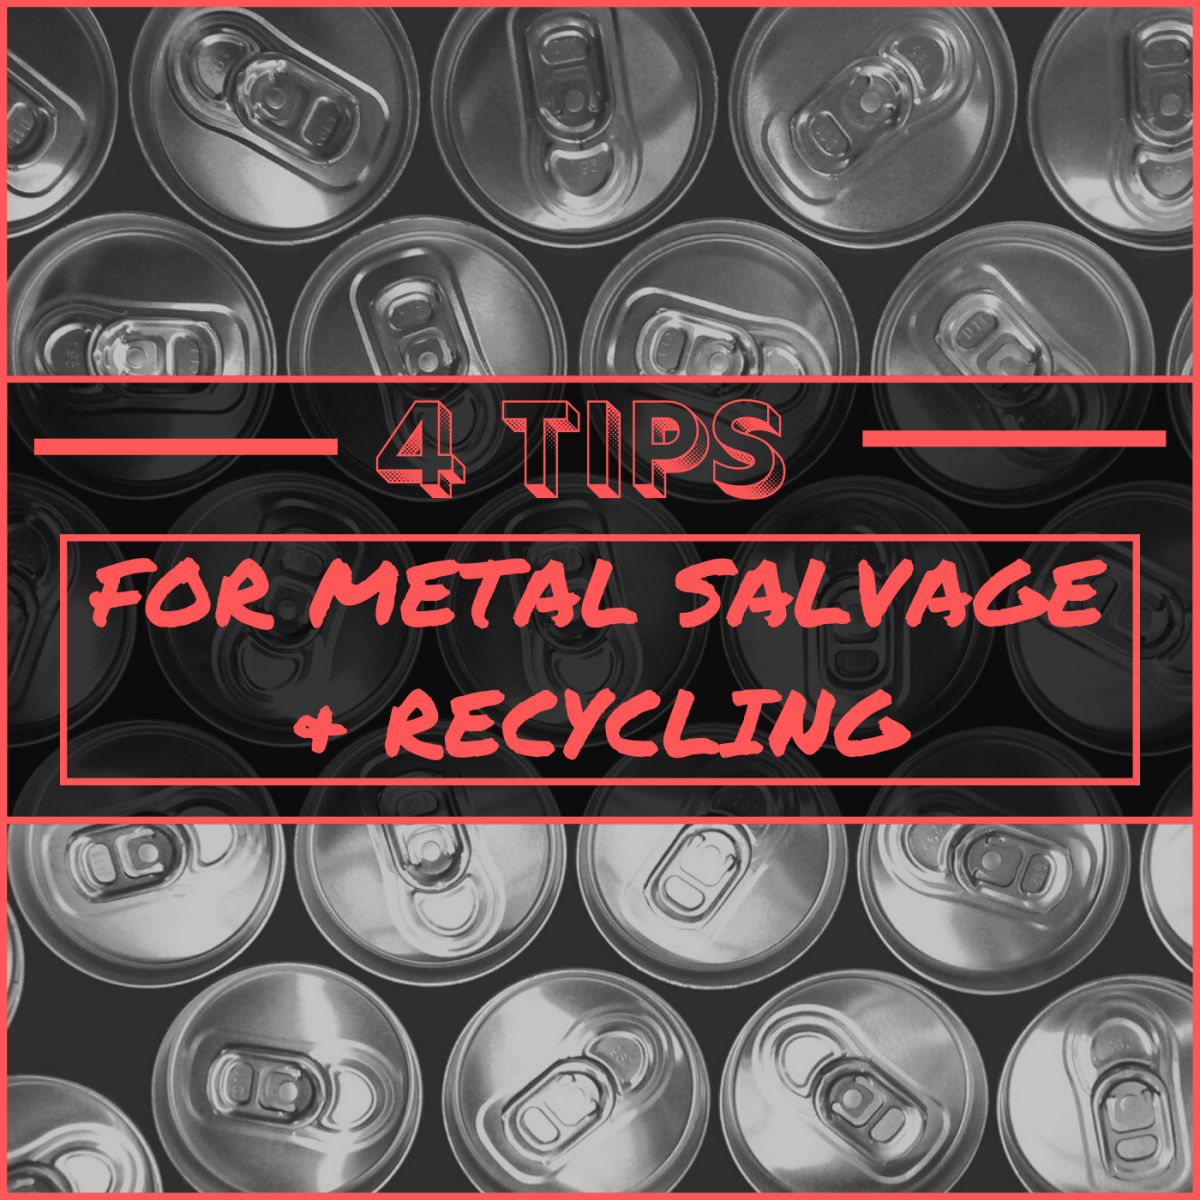 Want to earn more from your scrap metal and recycling hobby? Here are four helpful tips.